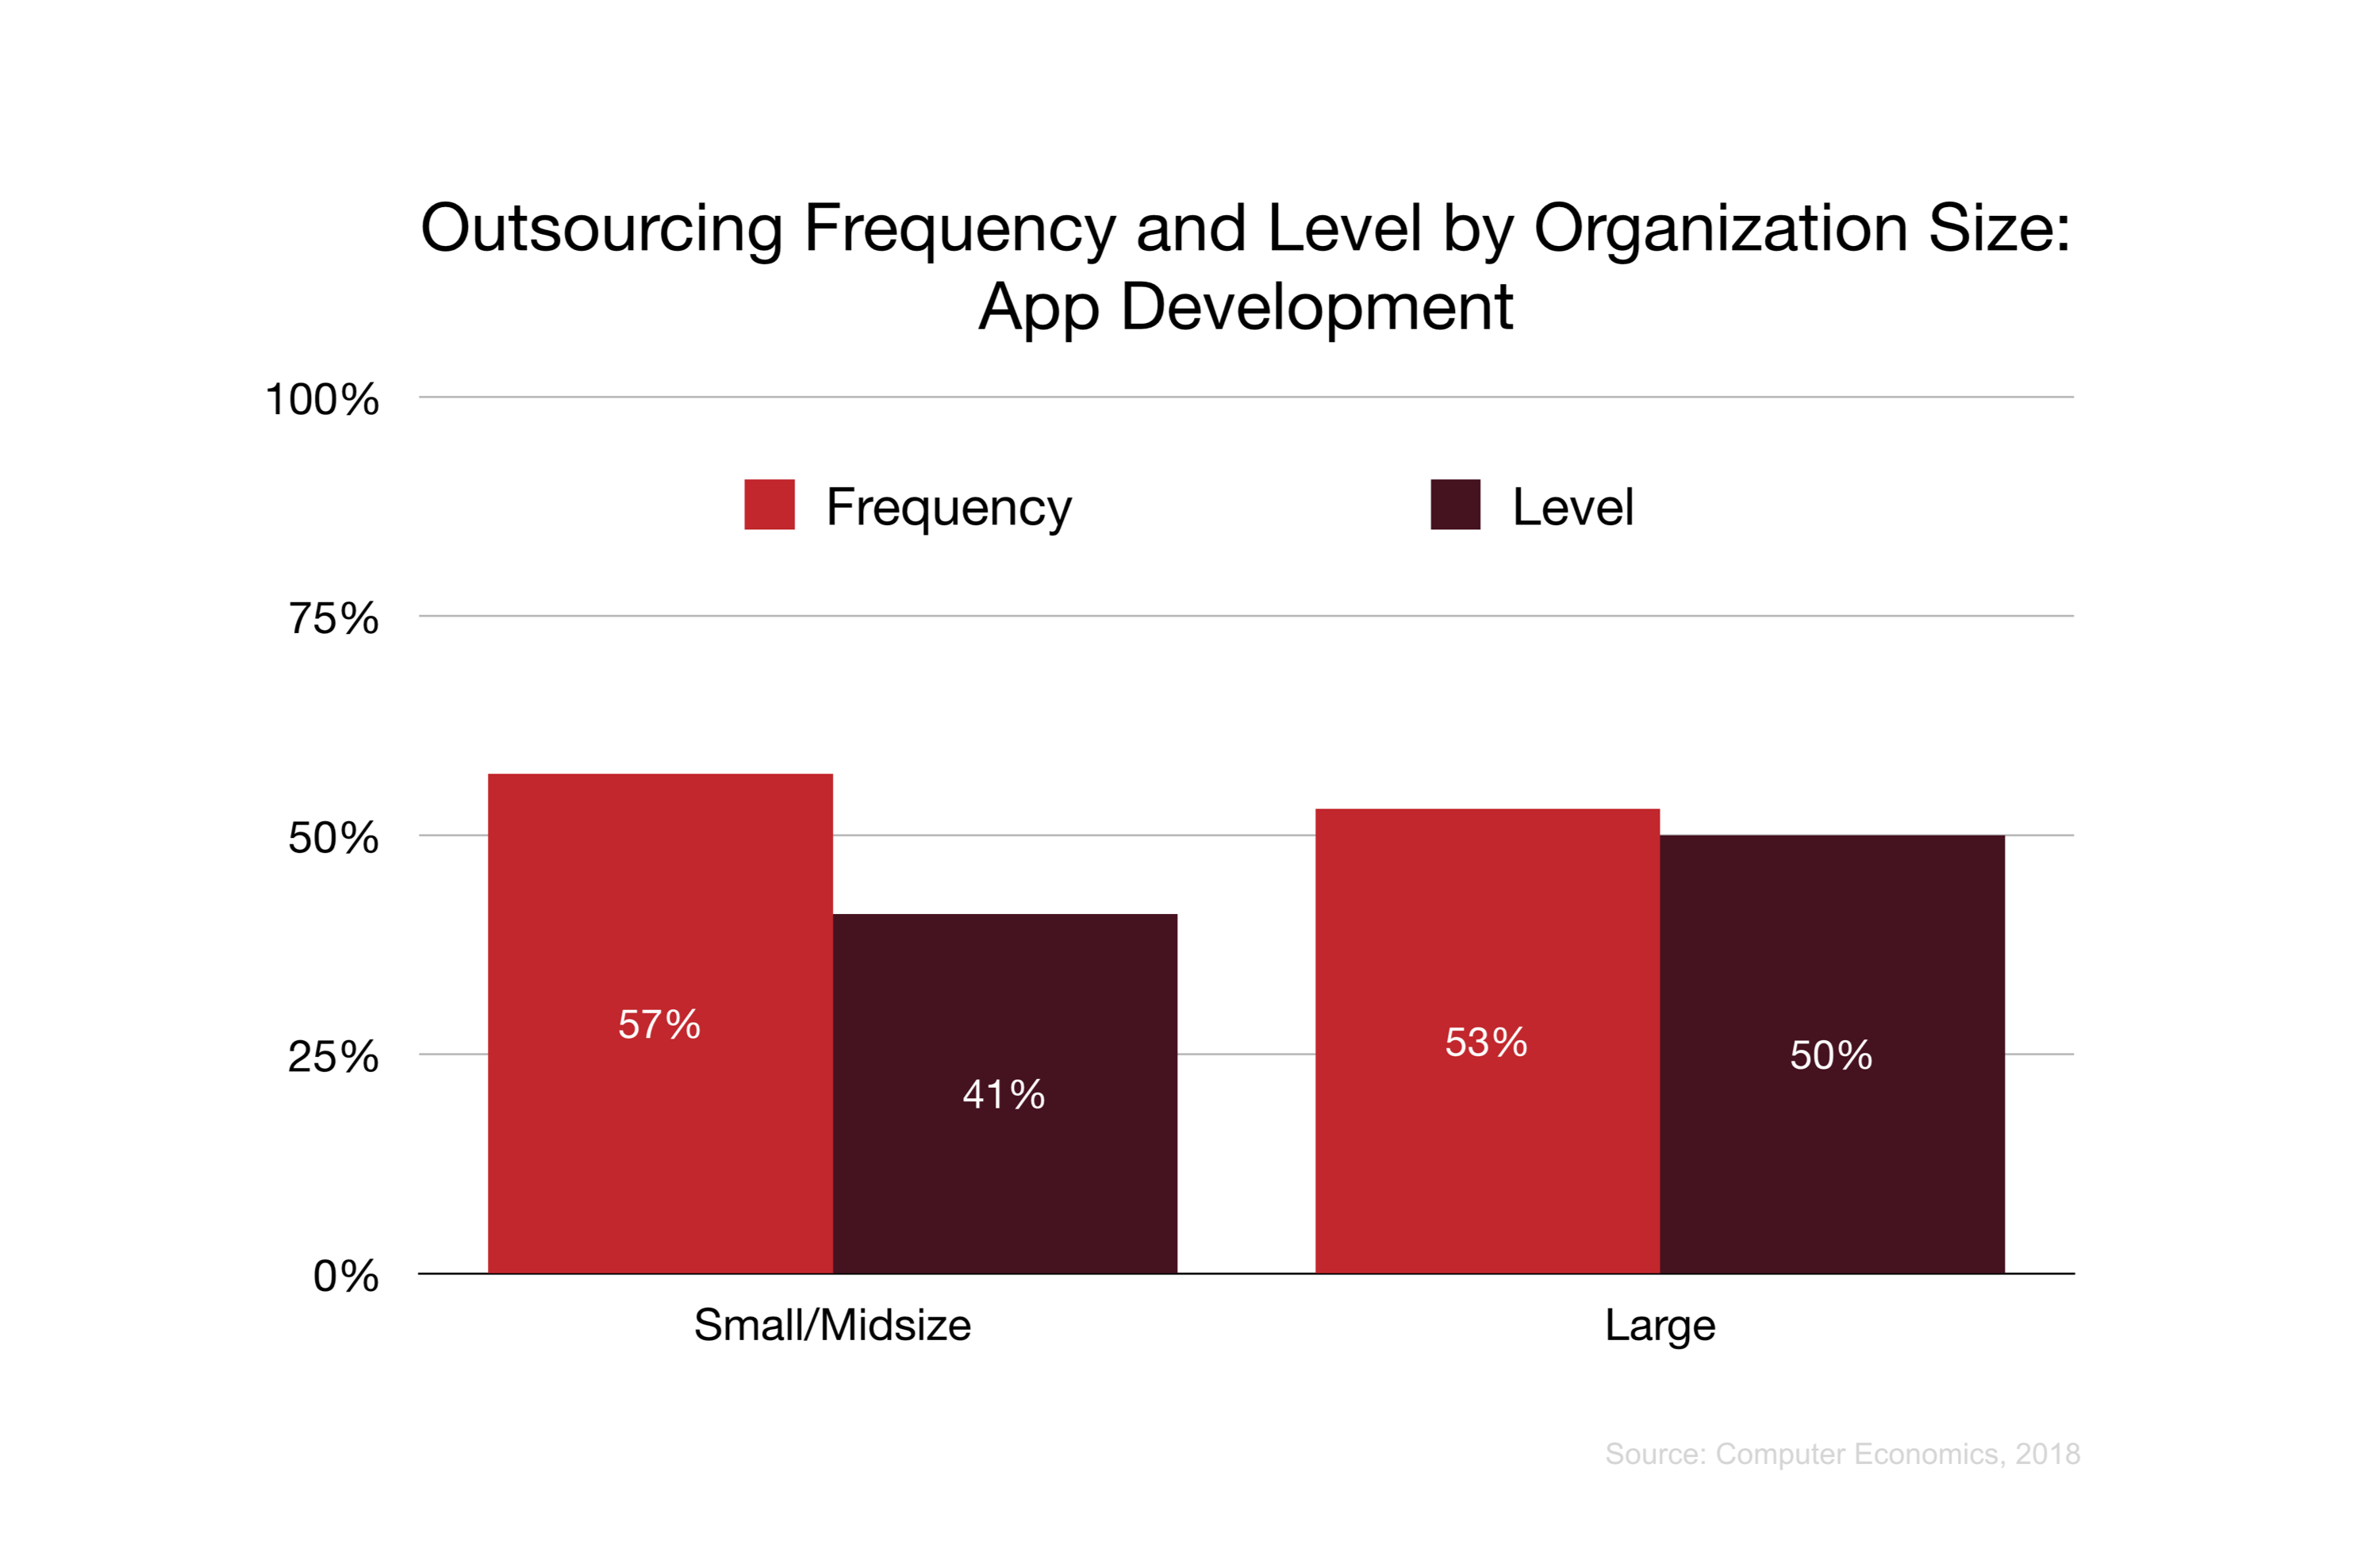 Outsourcing Frequency and Level by Organization Size: App Development